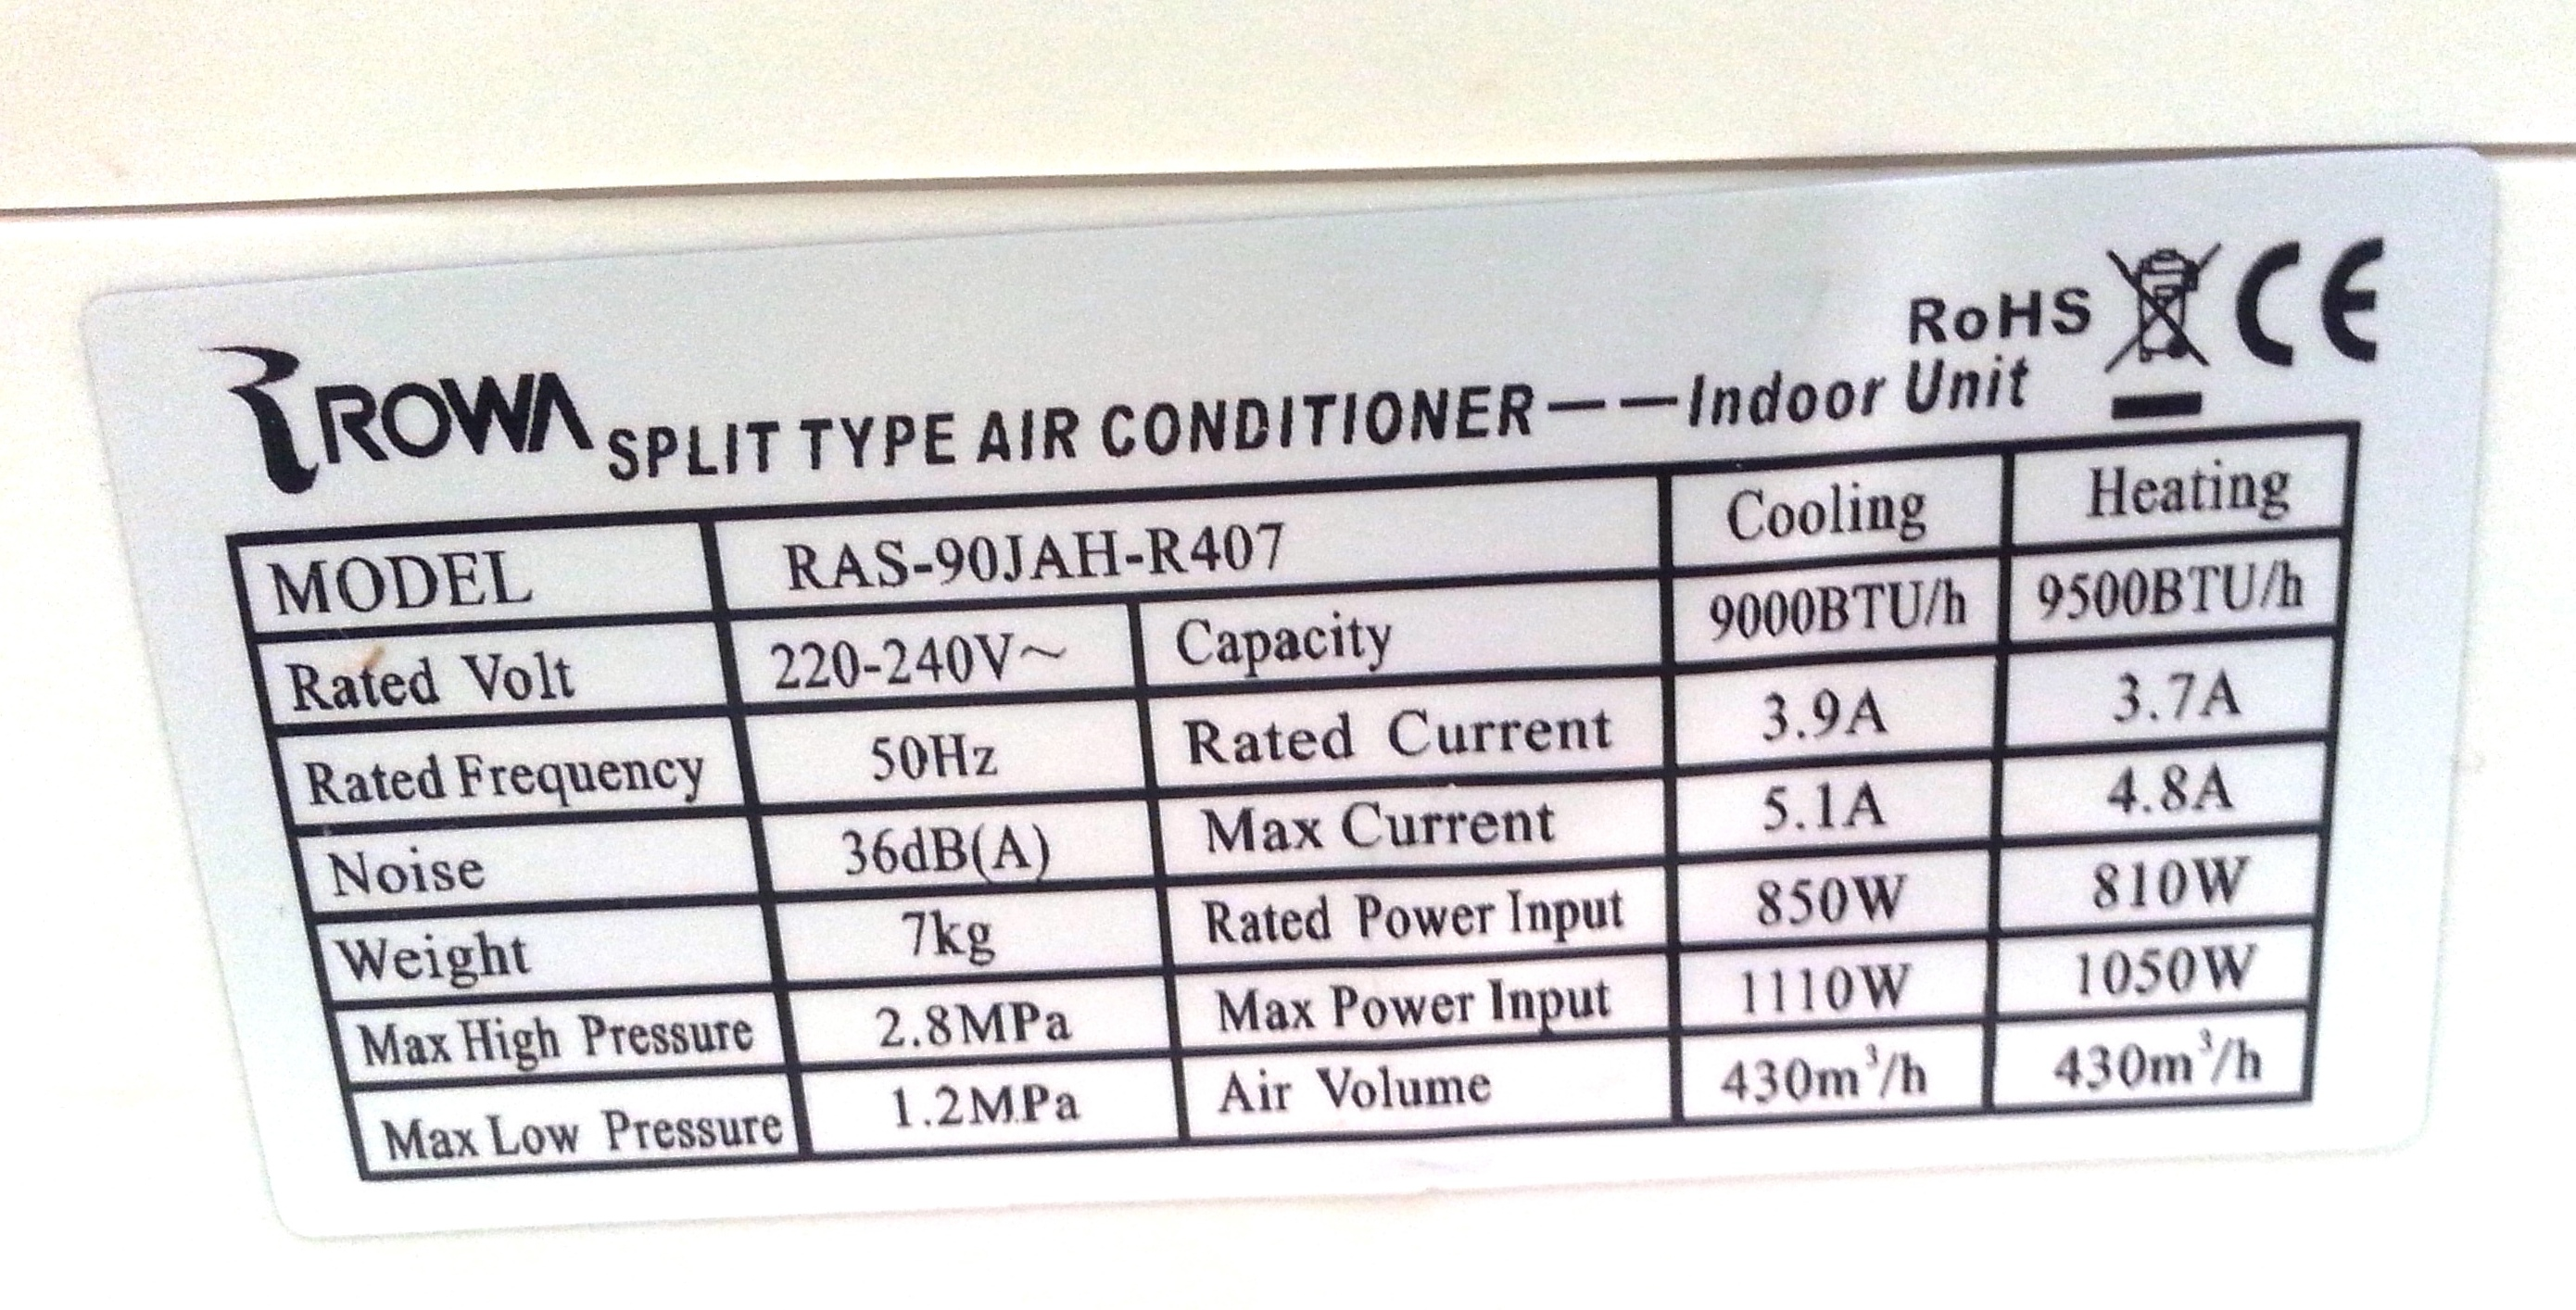 Controlling Air Conditioner via IR - Need Help With My